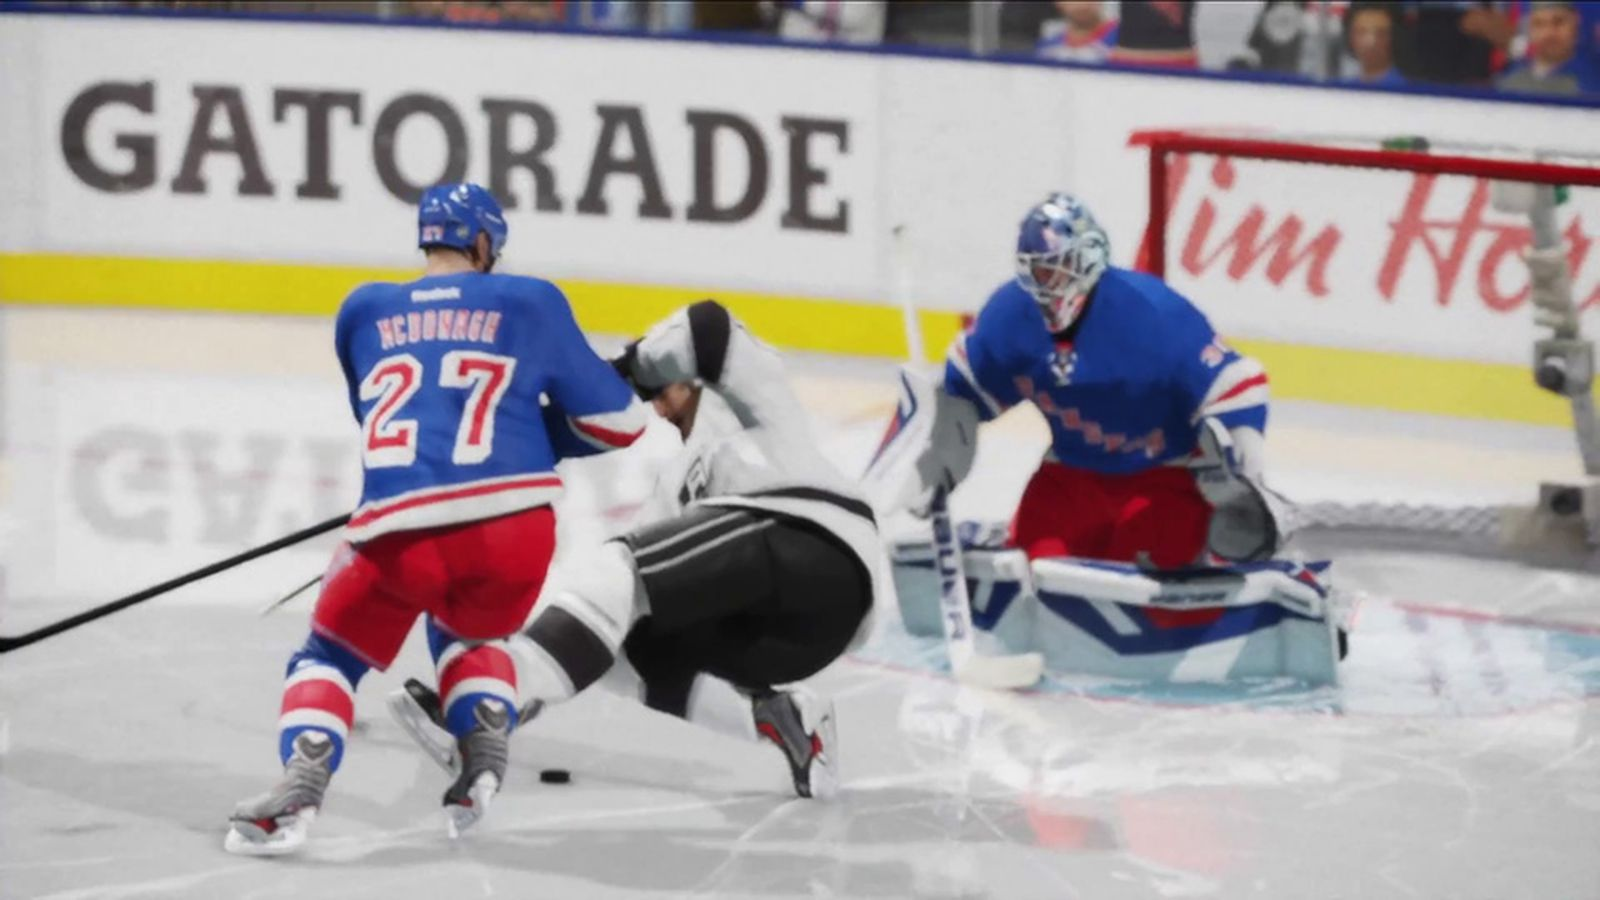 Nhl 15 Release Date Nhl 15 - playstation 4 - www.